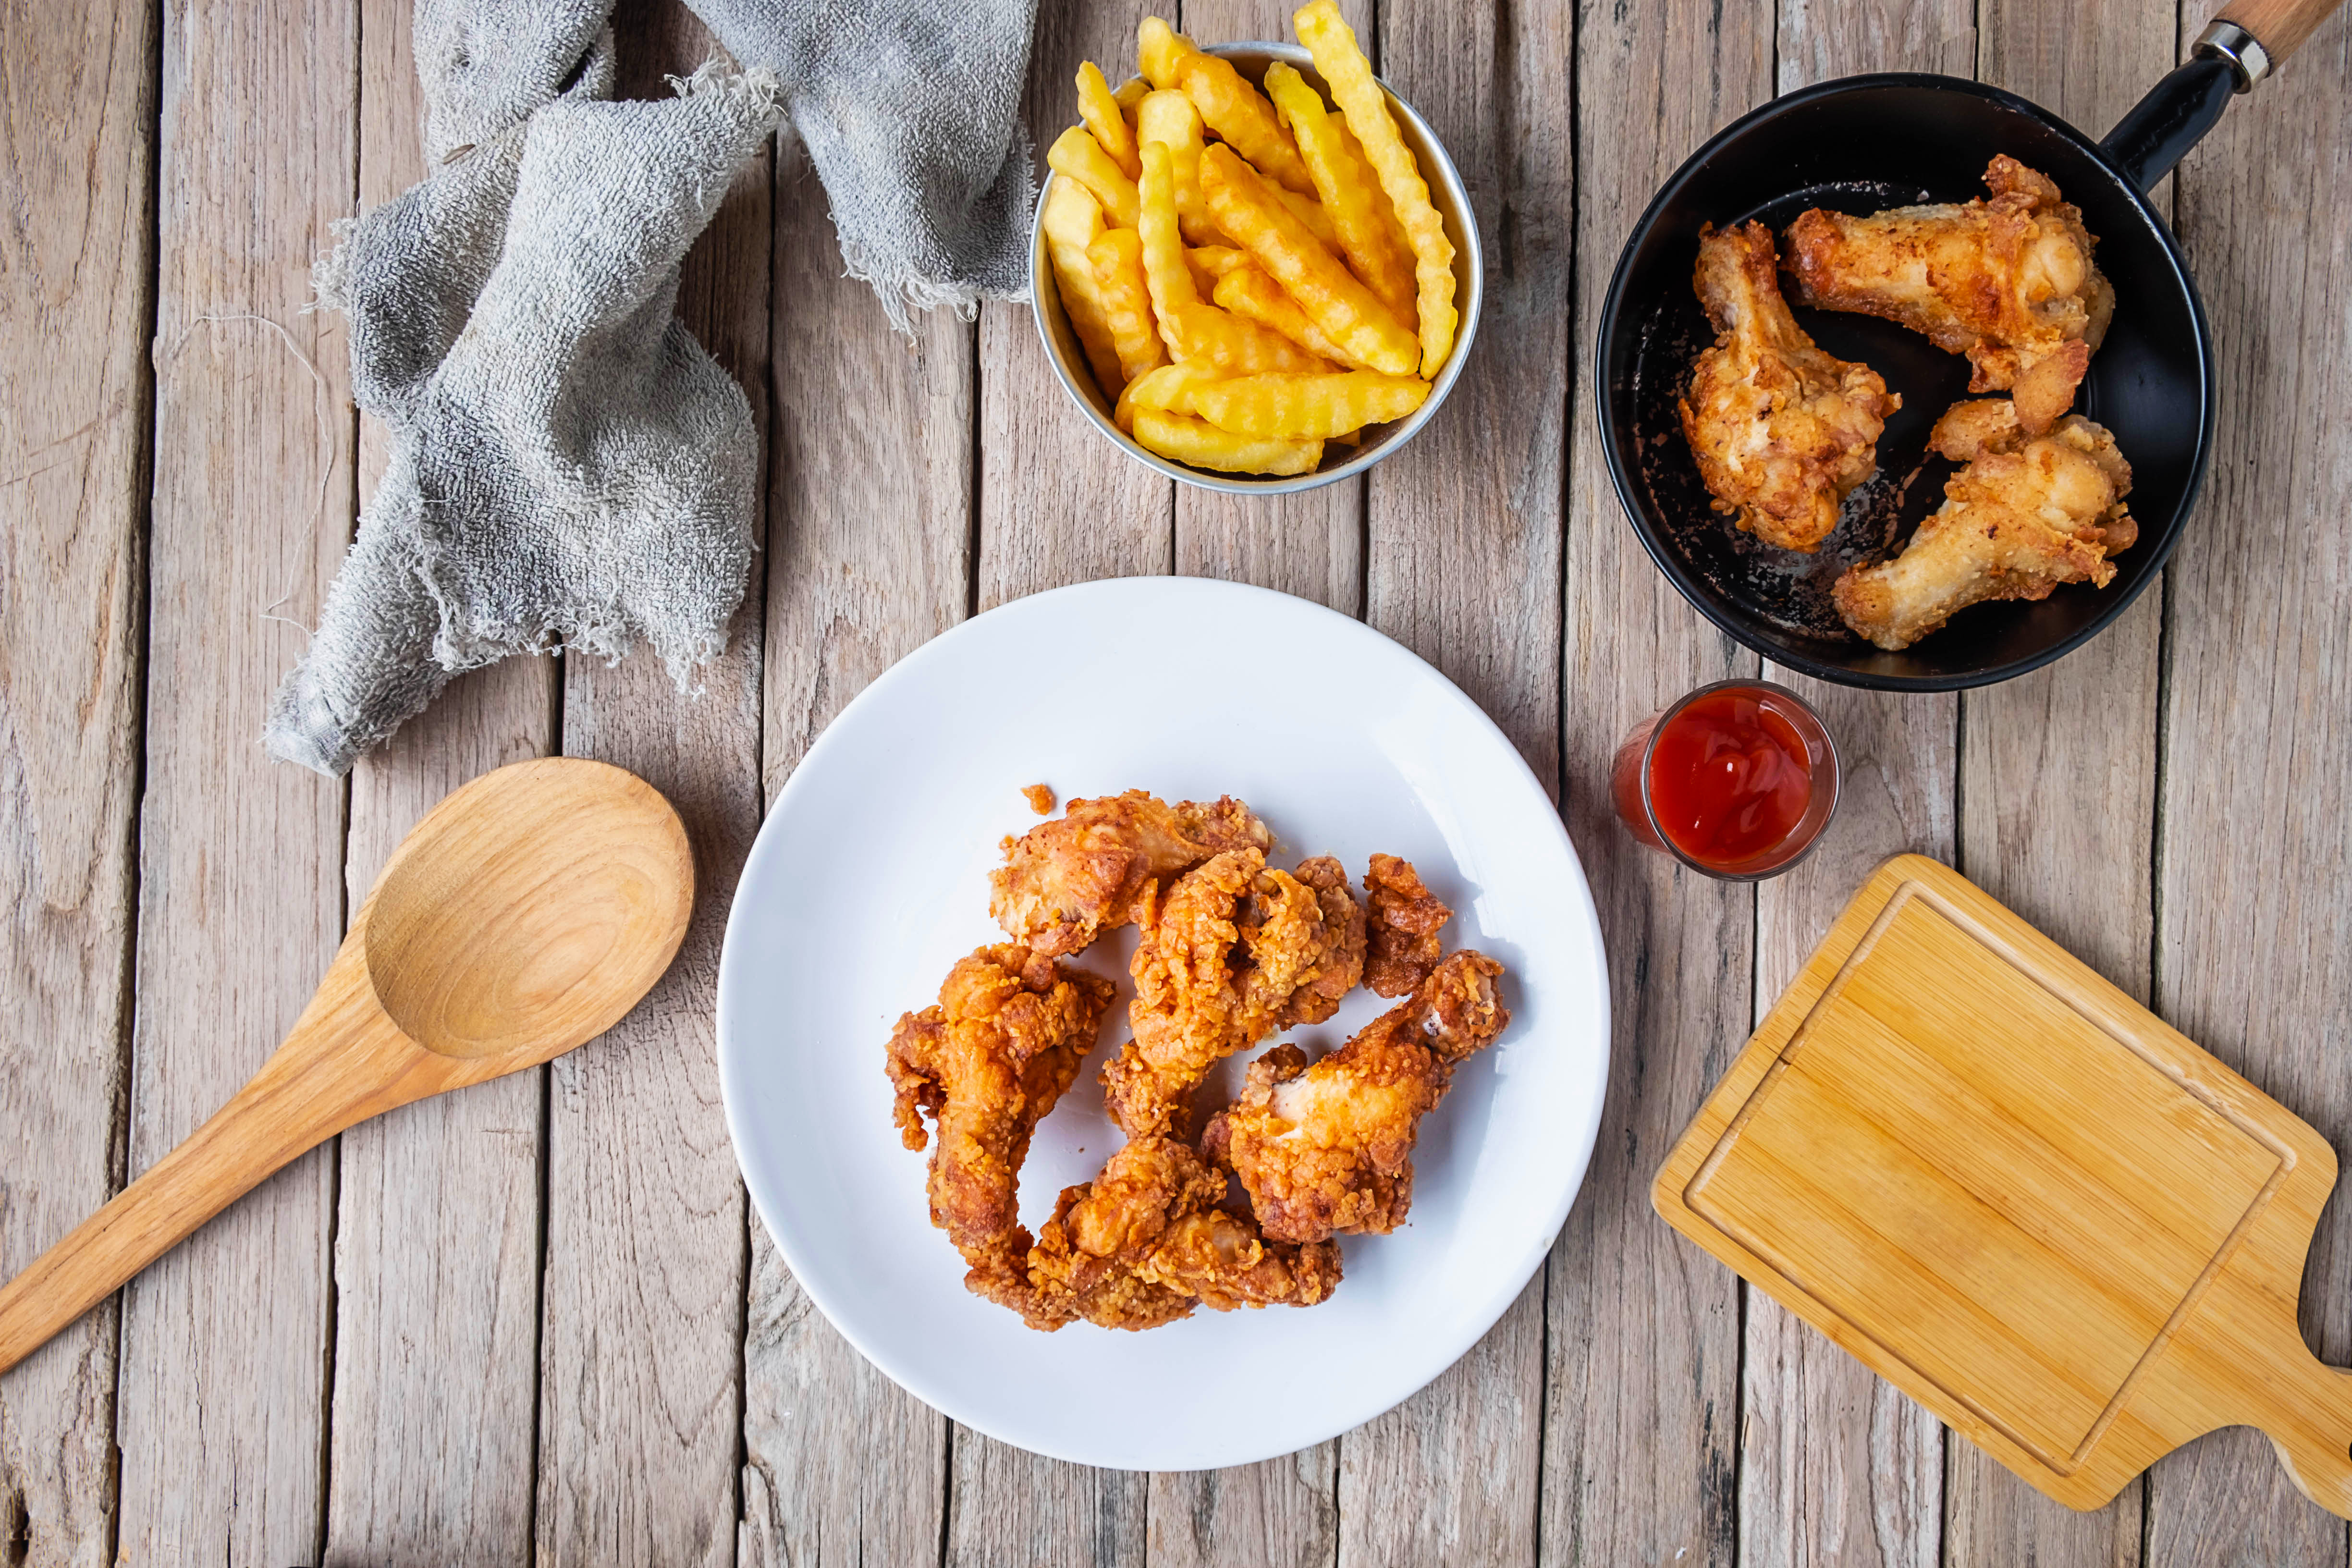 Cook fried chicken on the table in the kitchen.|air-fryer